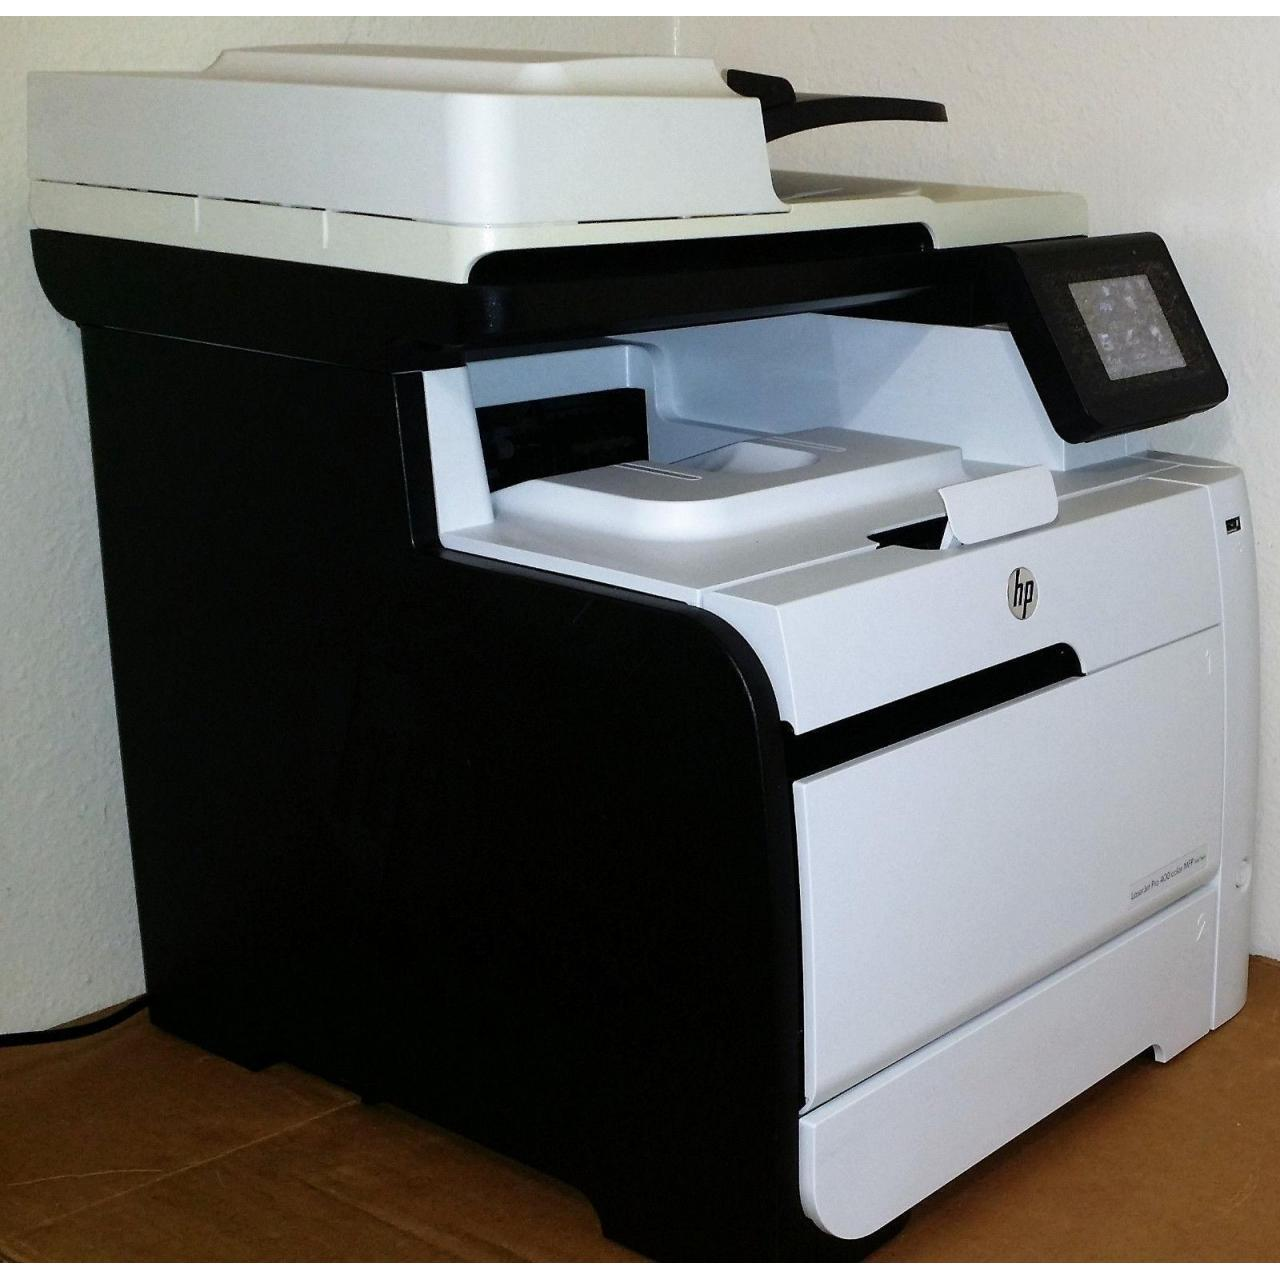 Buy cheap HP LaserJet Pro 400 MFP M475dn All-In-One Laser Printer product